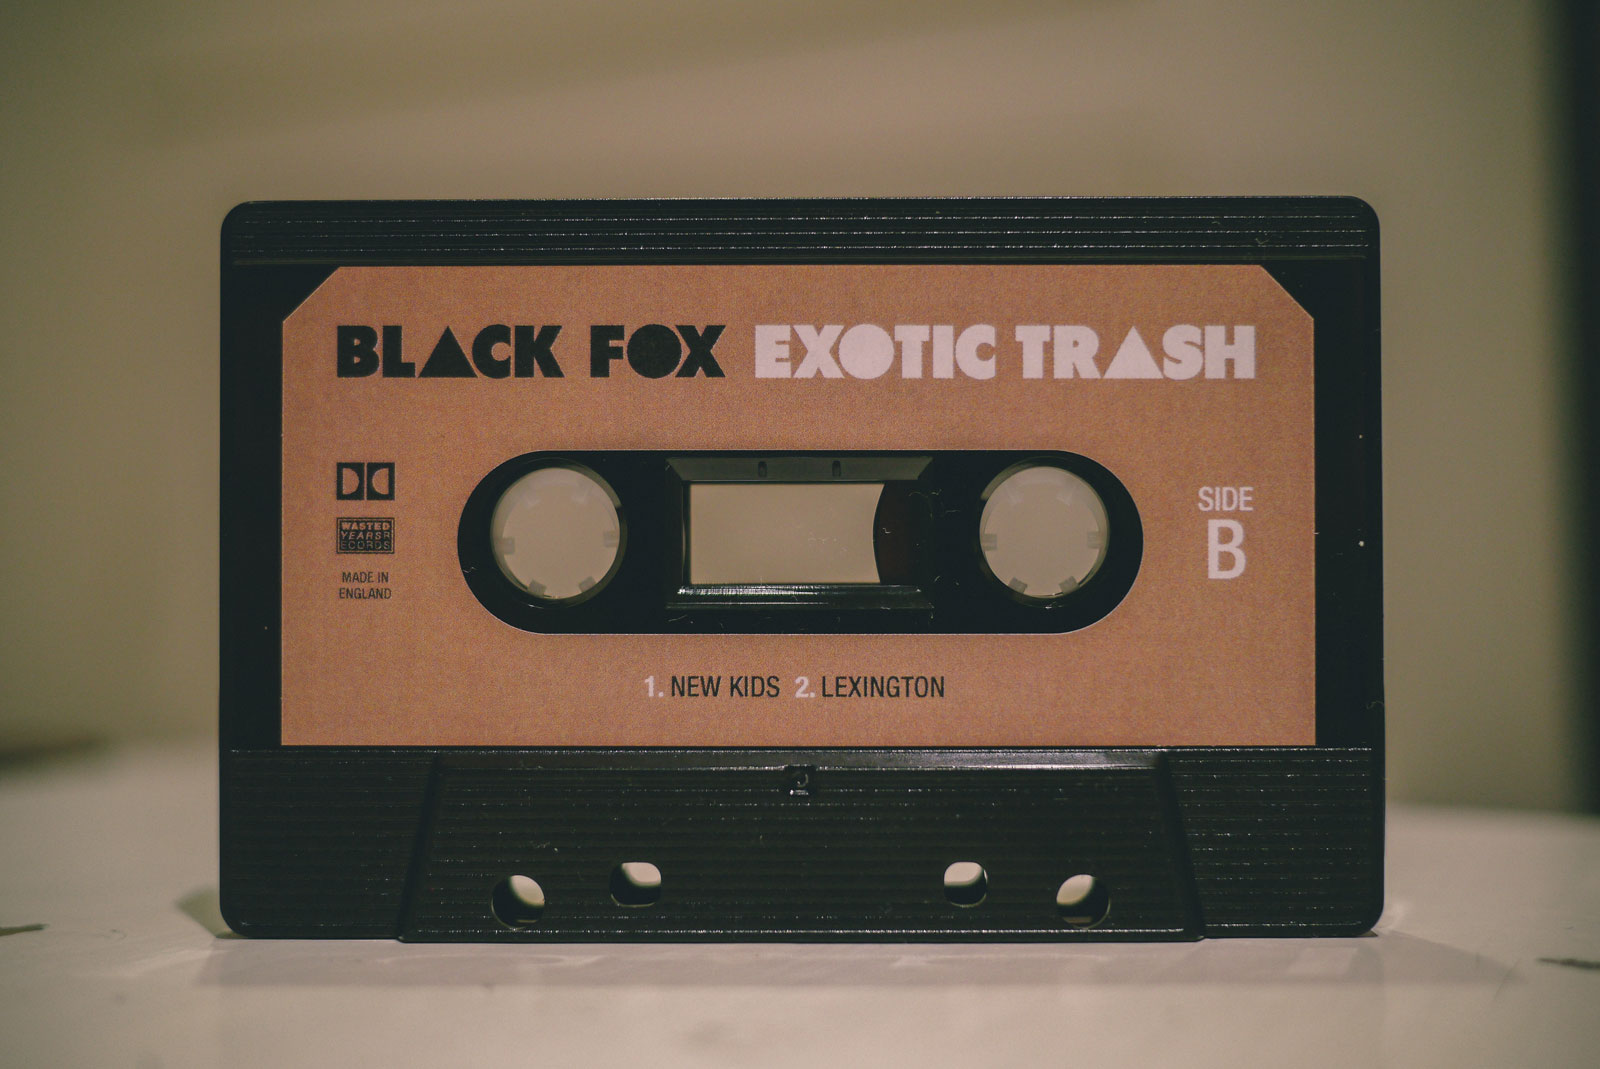 Black Fox Exotic Trash Cassette